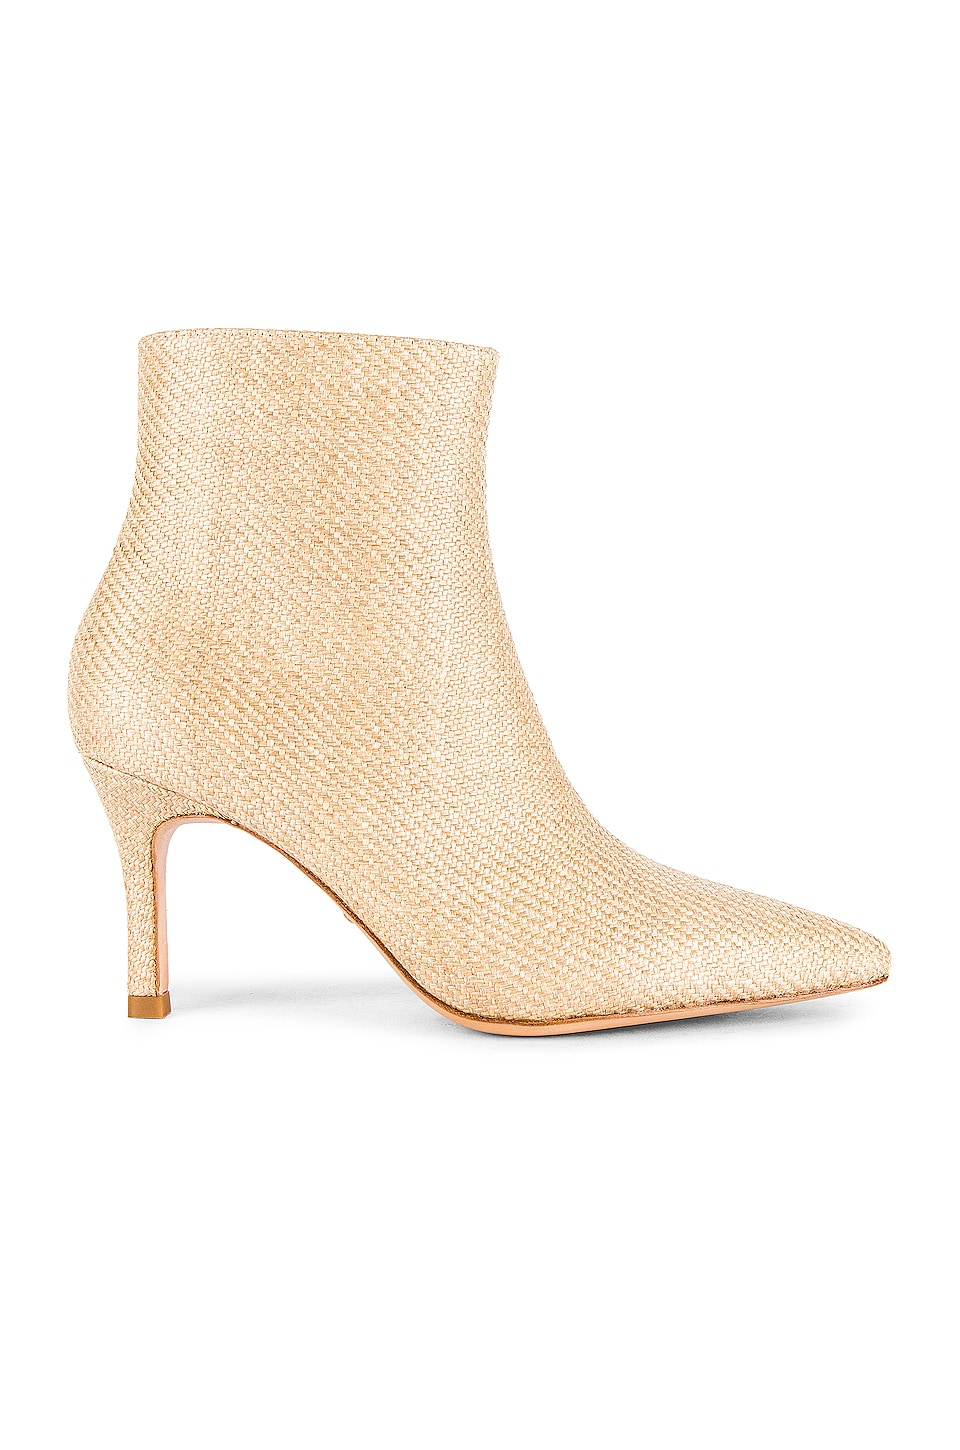 RAYE Liberty Bootie in Natural